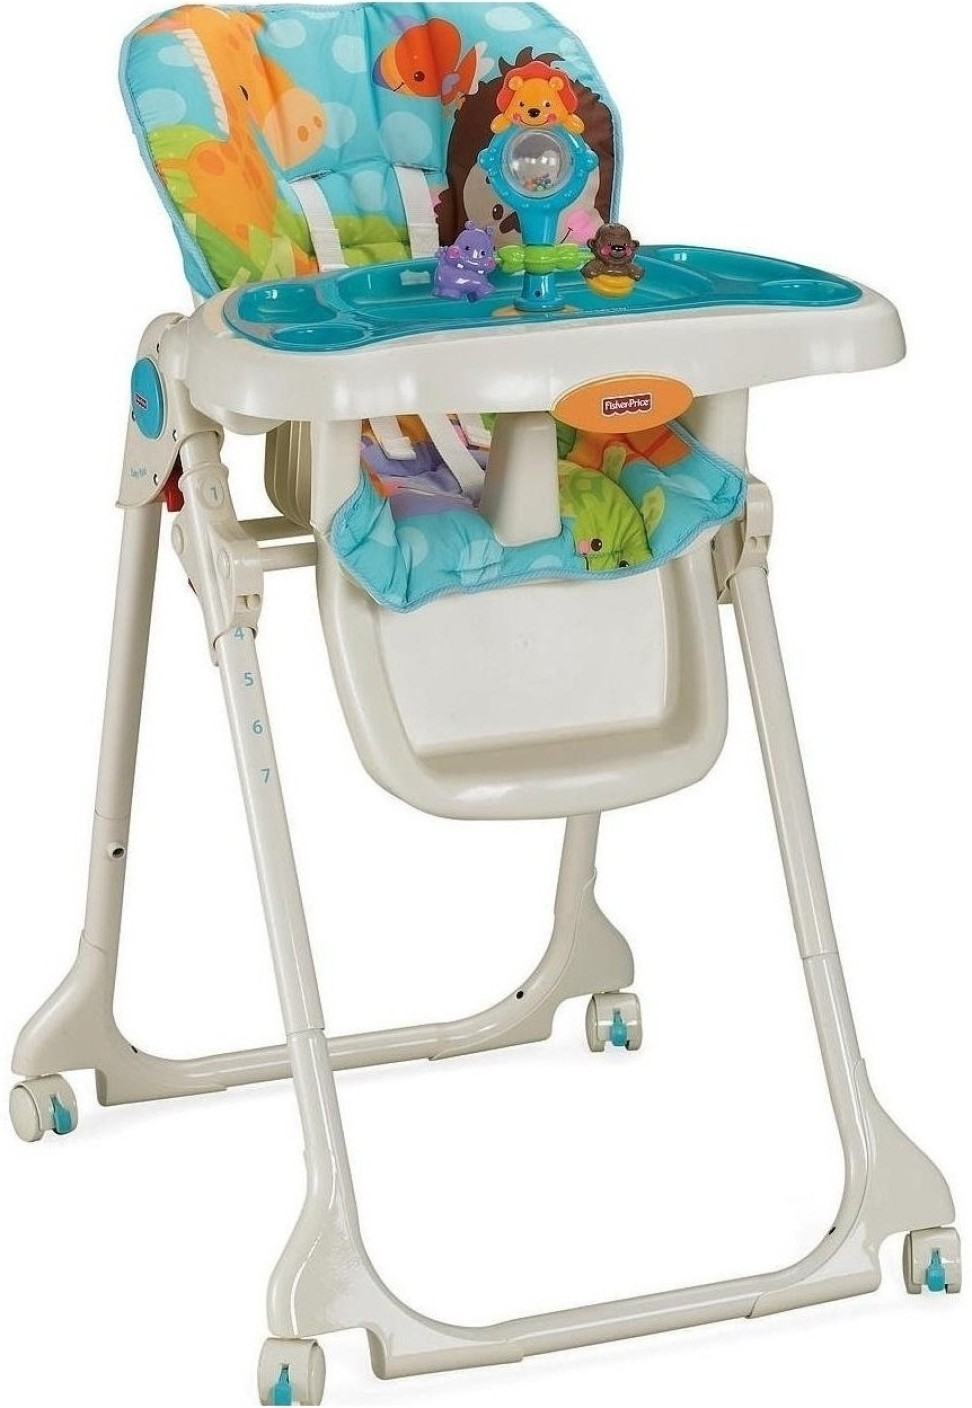 Fisher price precious planet high chair - Fisher Price Precious Planet High Chair Wishlist